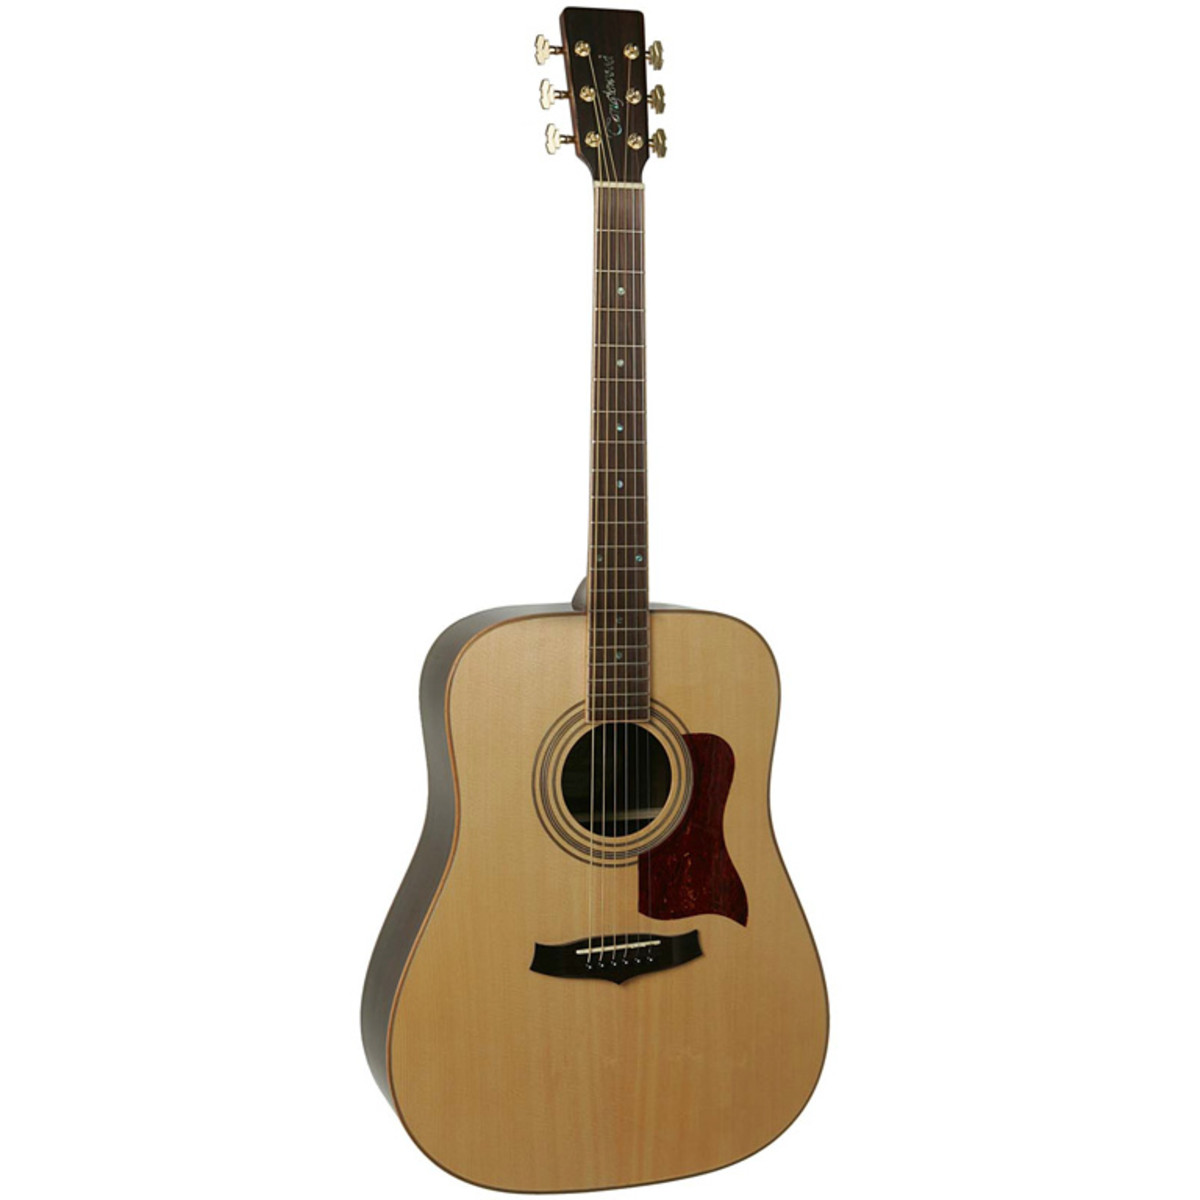 Disc tanglewood tw28 str dlx acoustic guitar at for The tanglewood